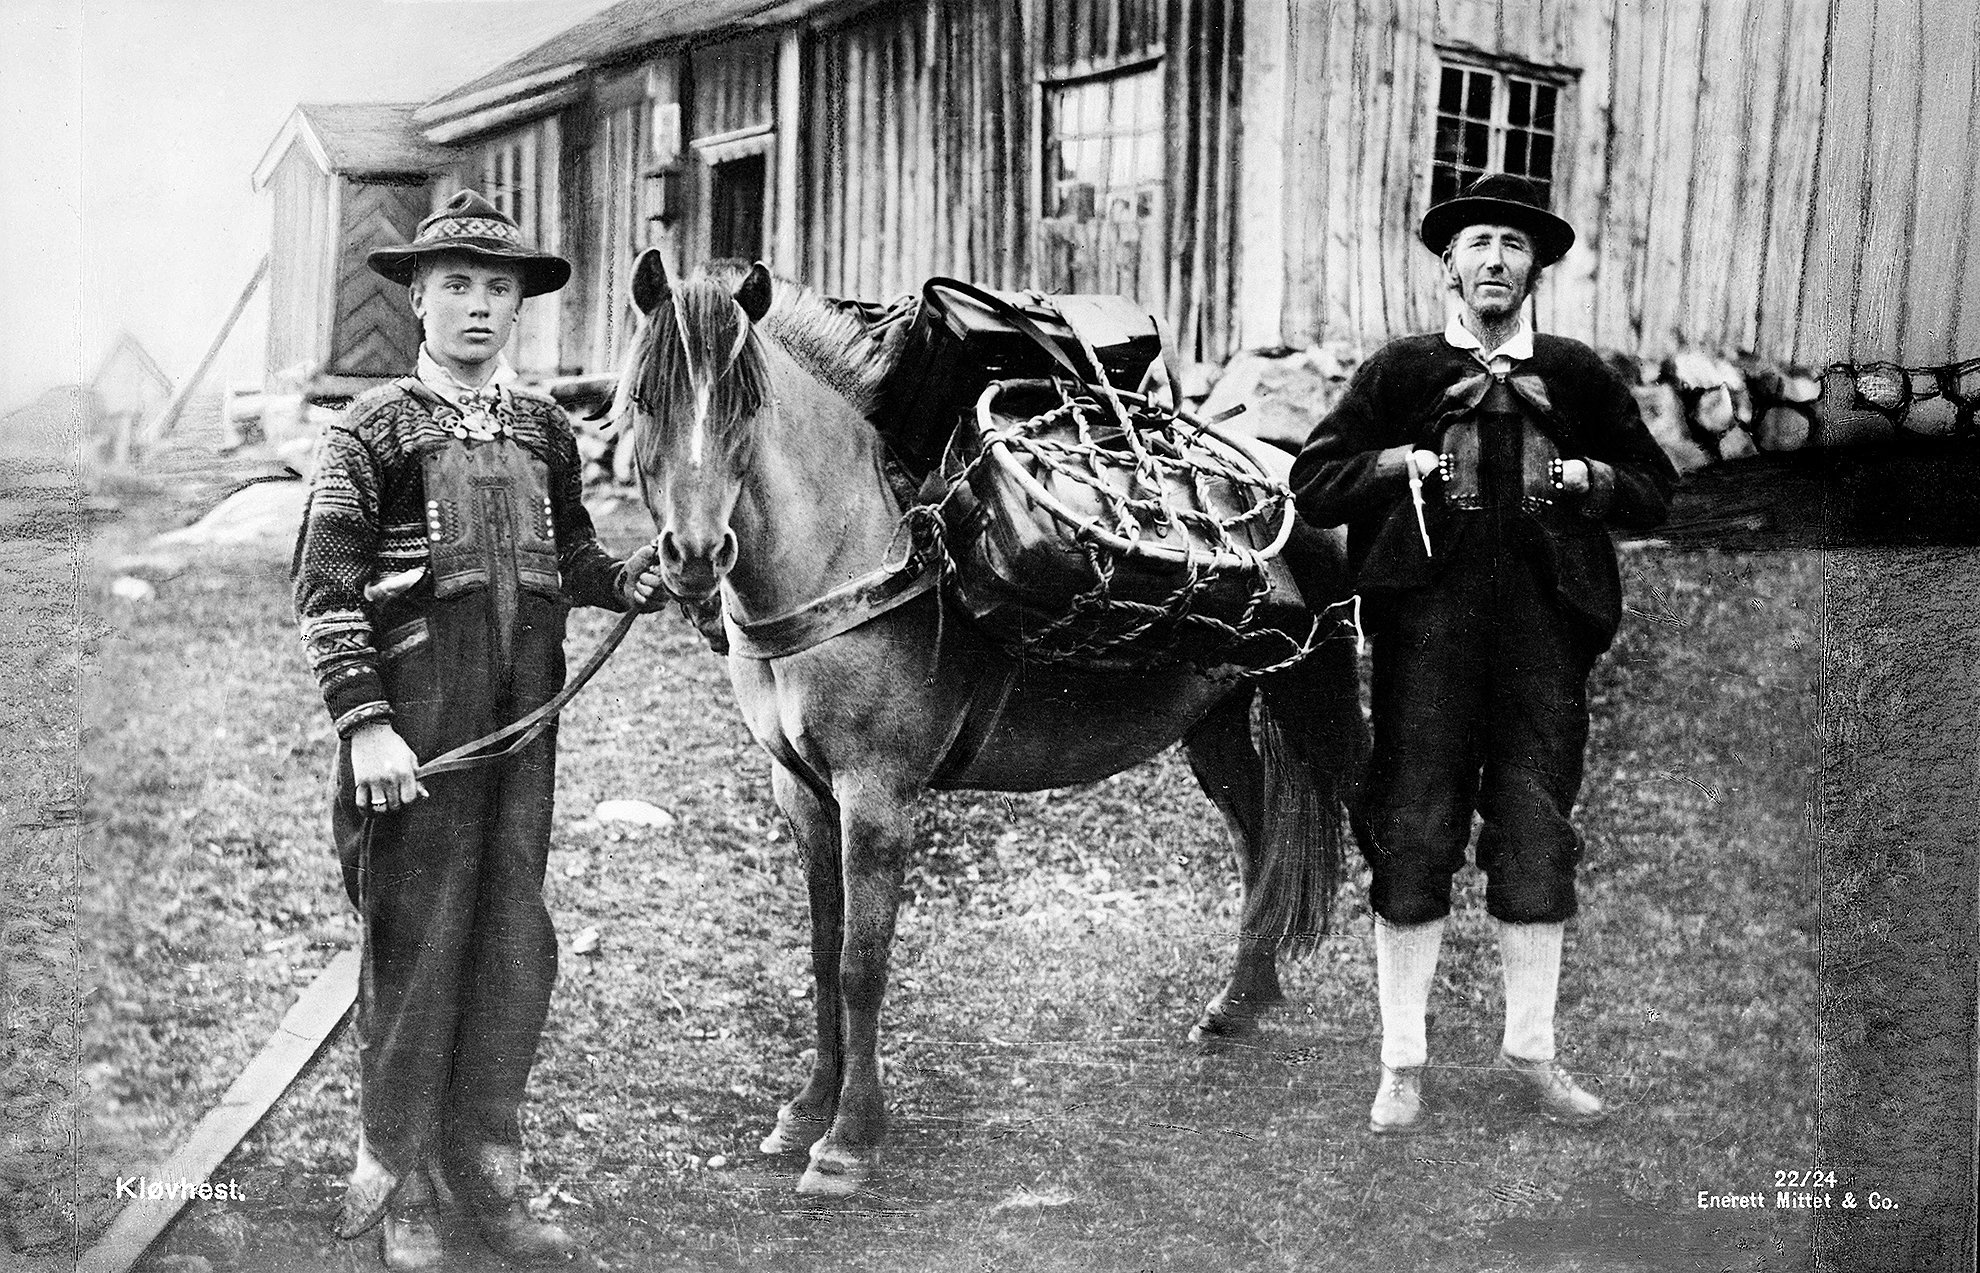 How the budrått often was brought home from the summer pasture farm. Except for the formal wear. From the early 1900s. | Photo: Mittet & Co. AS cc pdm.